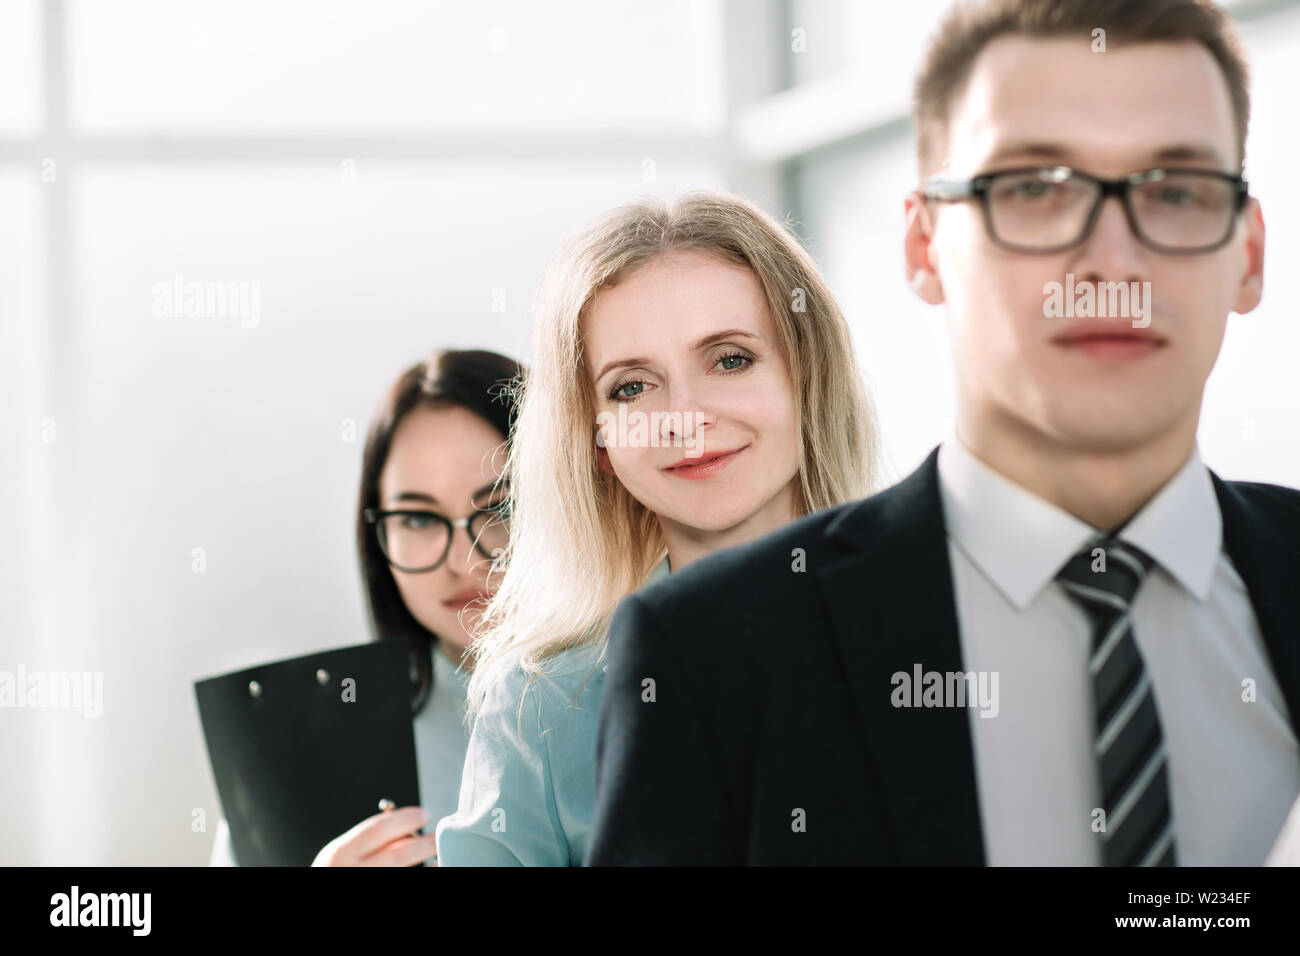 close up. young businesswoman and her colleagues standing together. photo with copy space - Stock Image